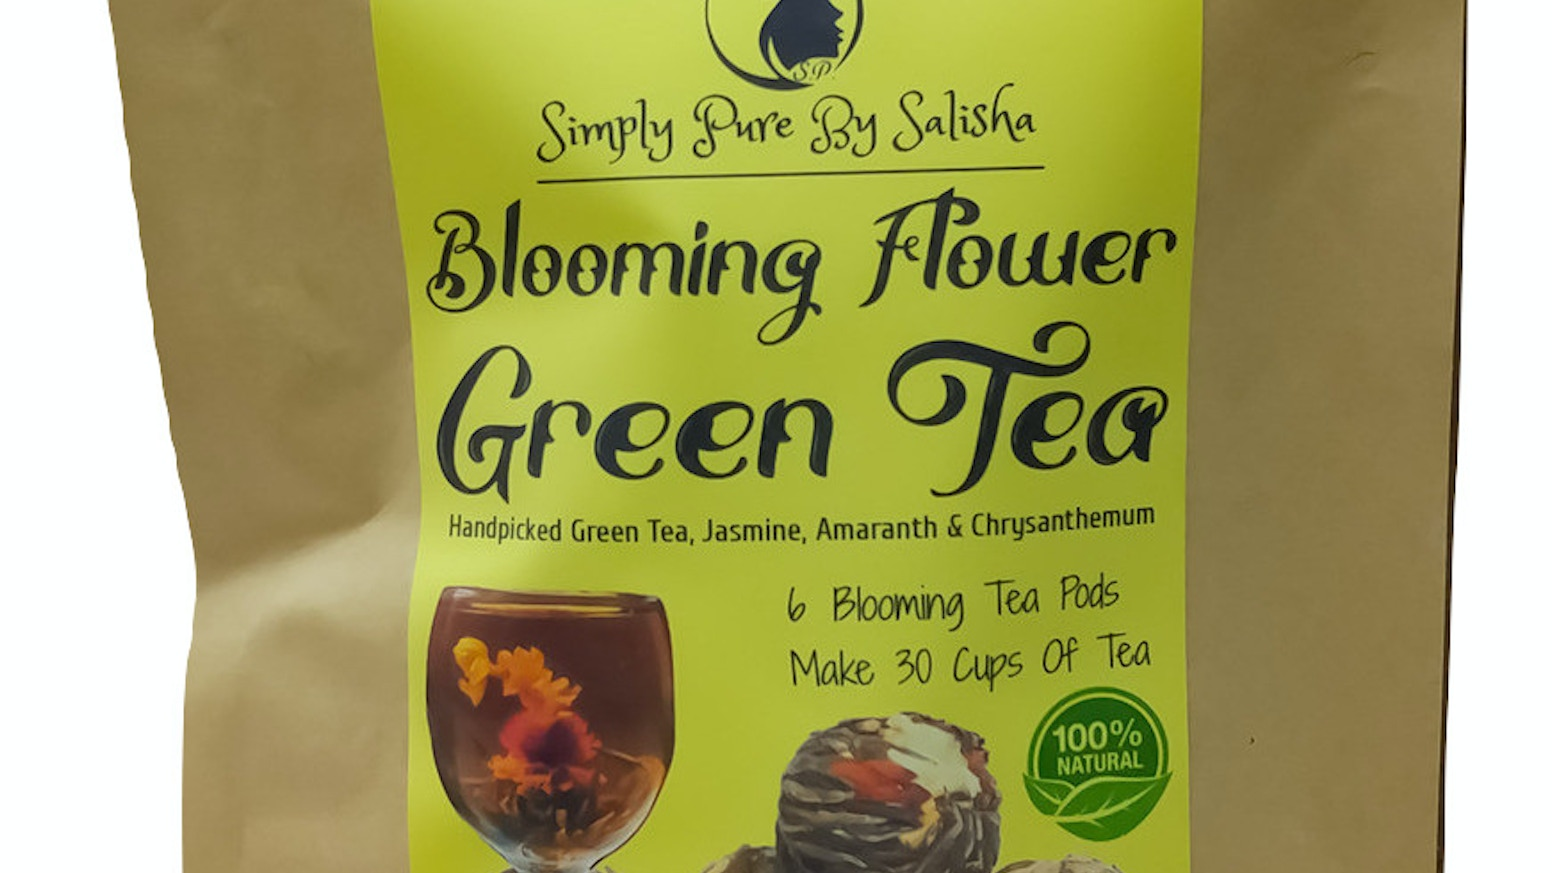 Still Drinking The Same Old Tea In Bags? Blossom With SImply Pure Natural Blooming Flower Tea. The Most Beautiful Tea In The World!